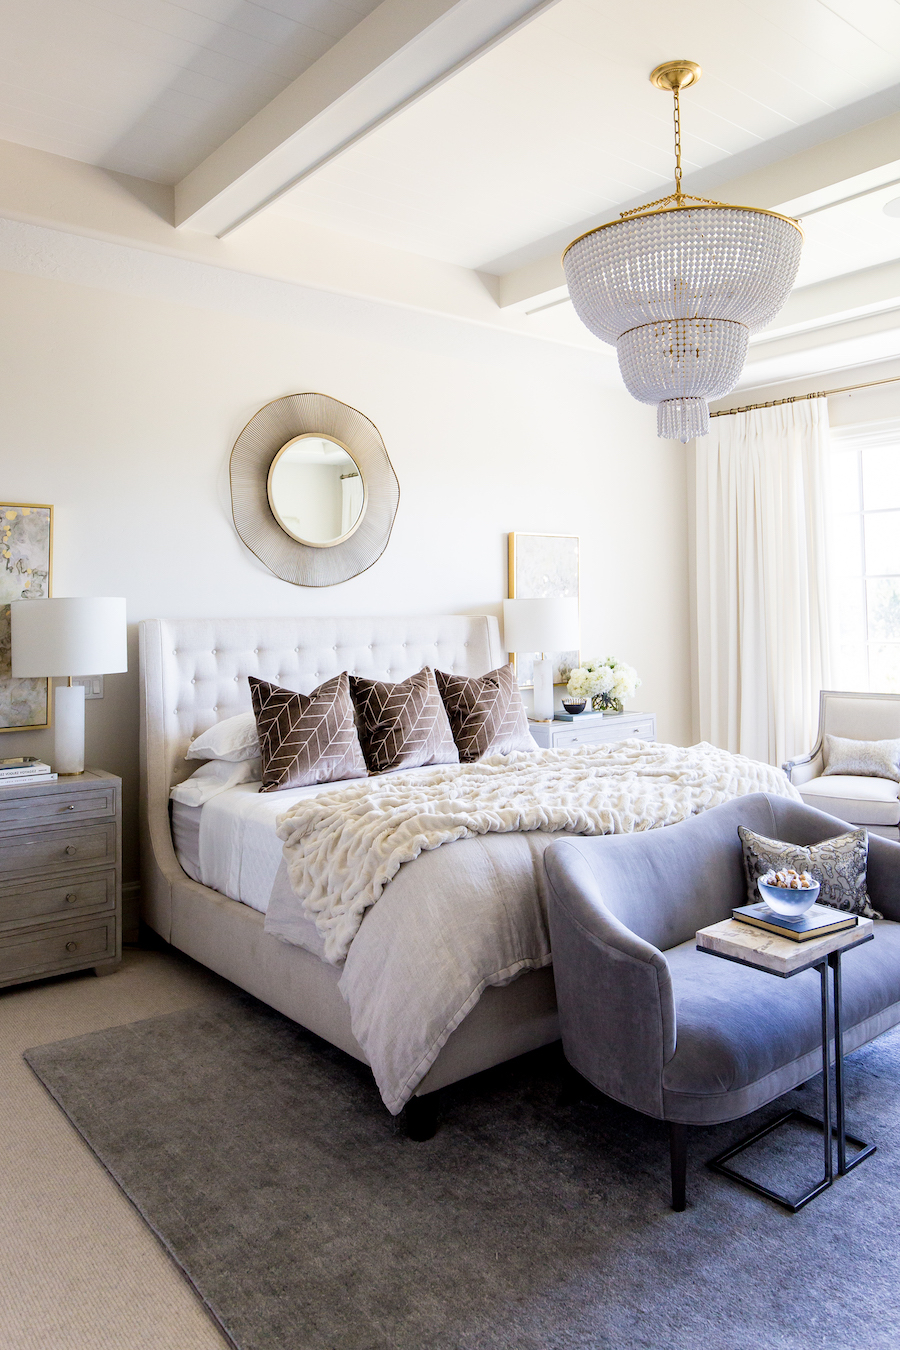 Room Redo | Neutral Glam Bedroom - copycatchic